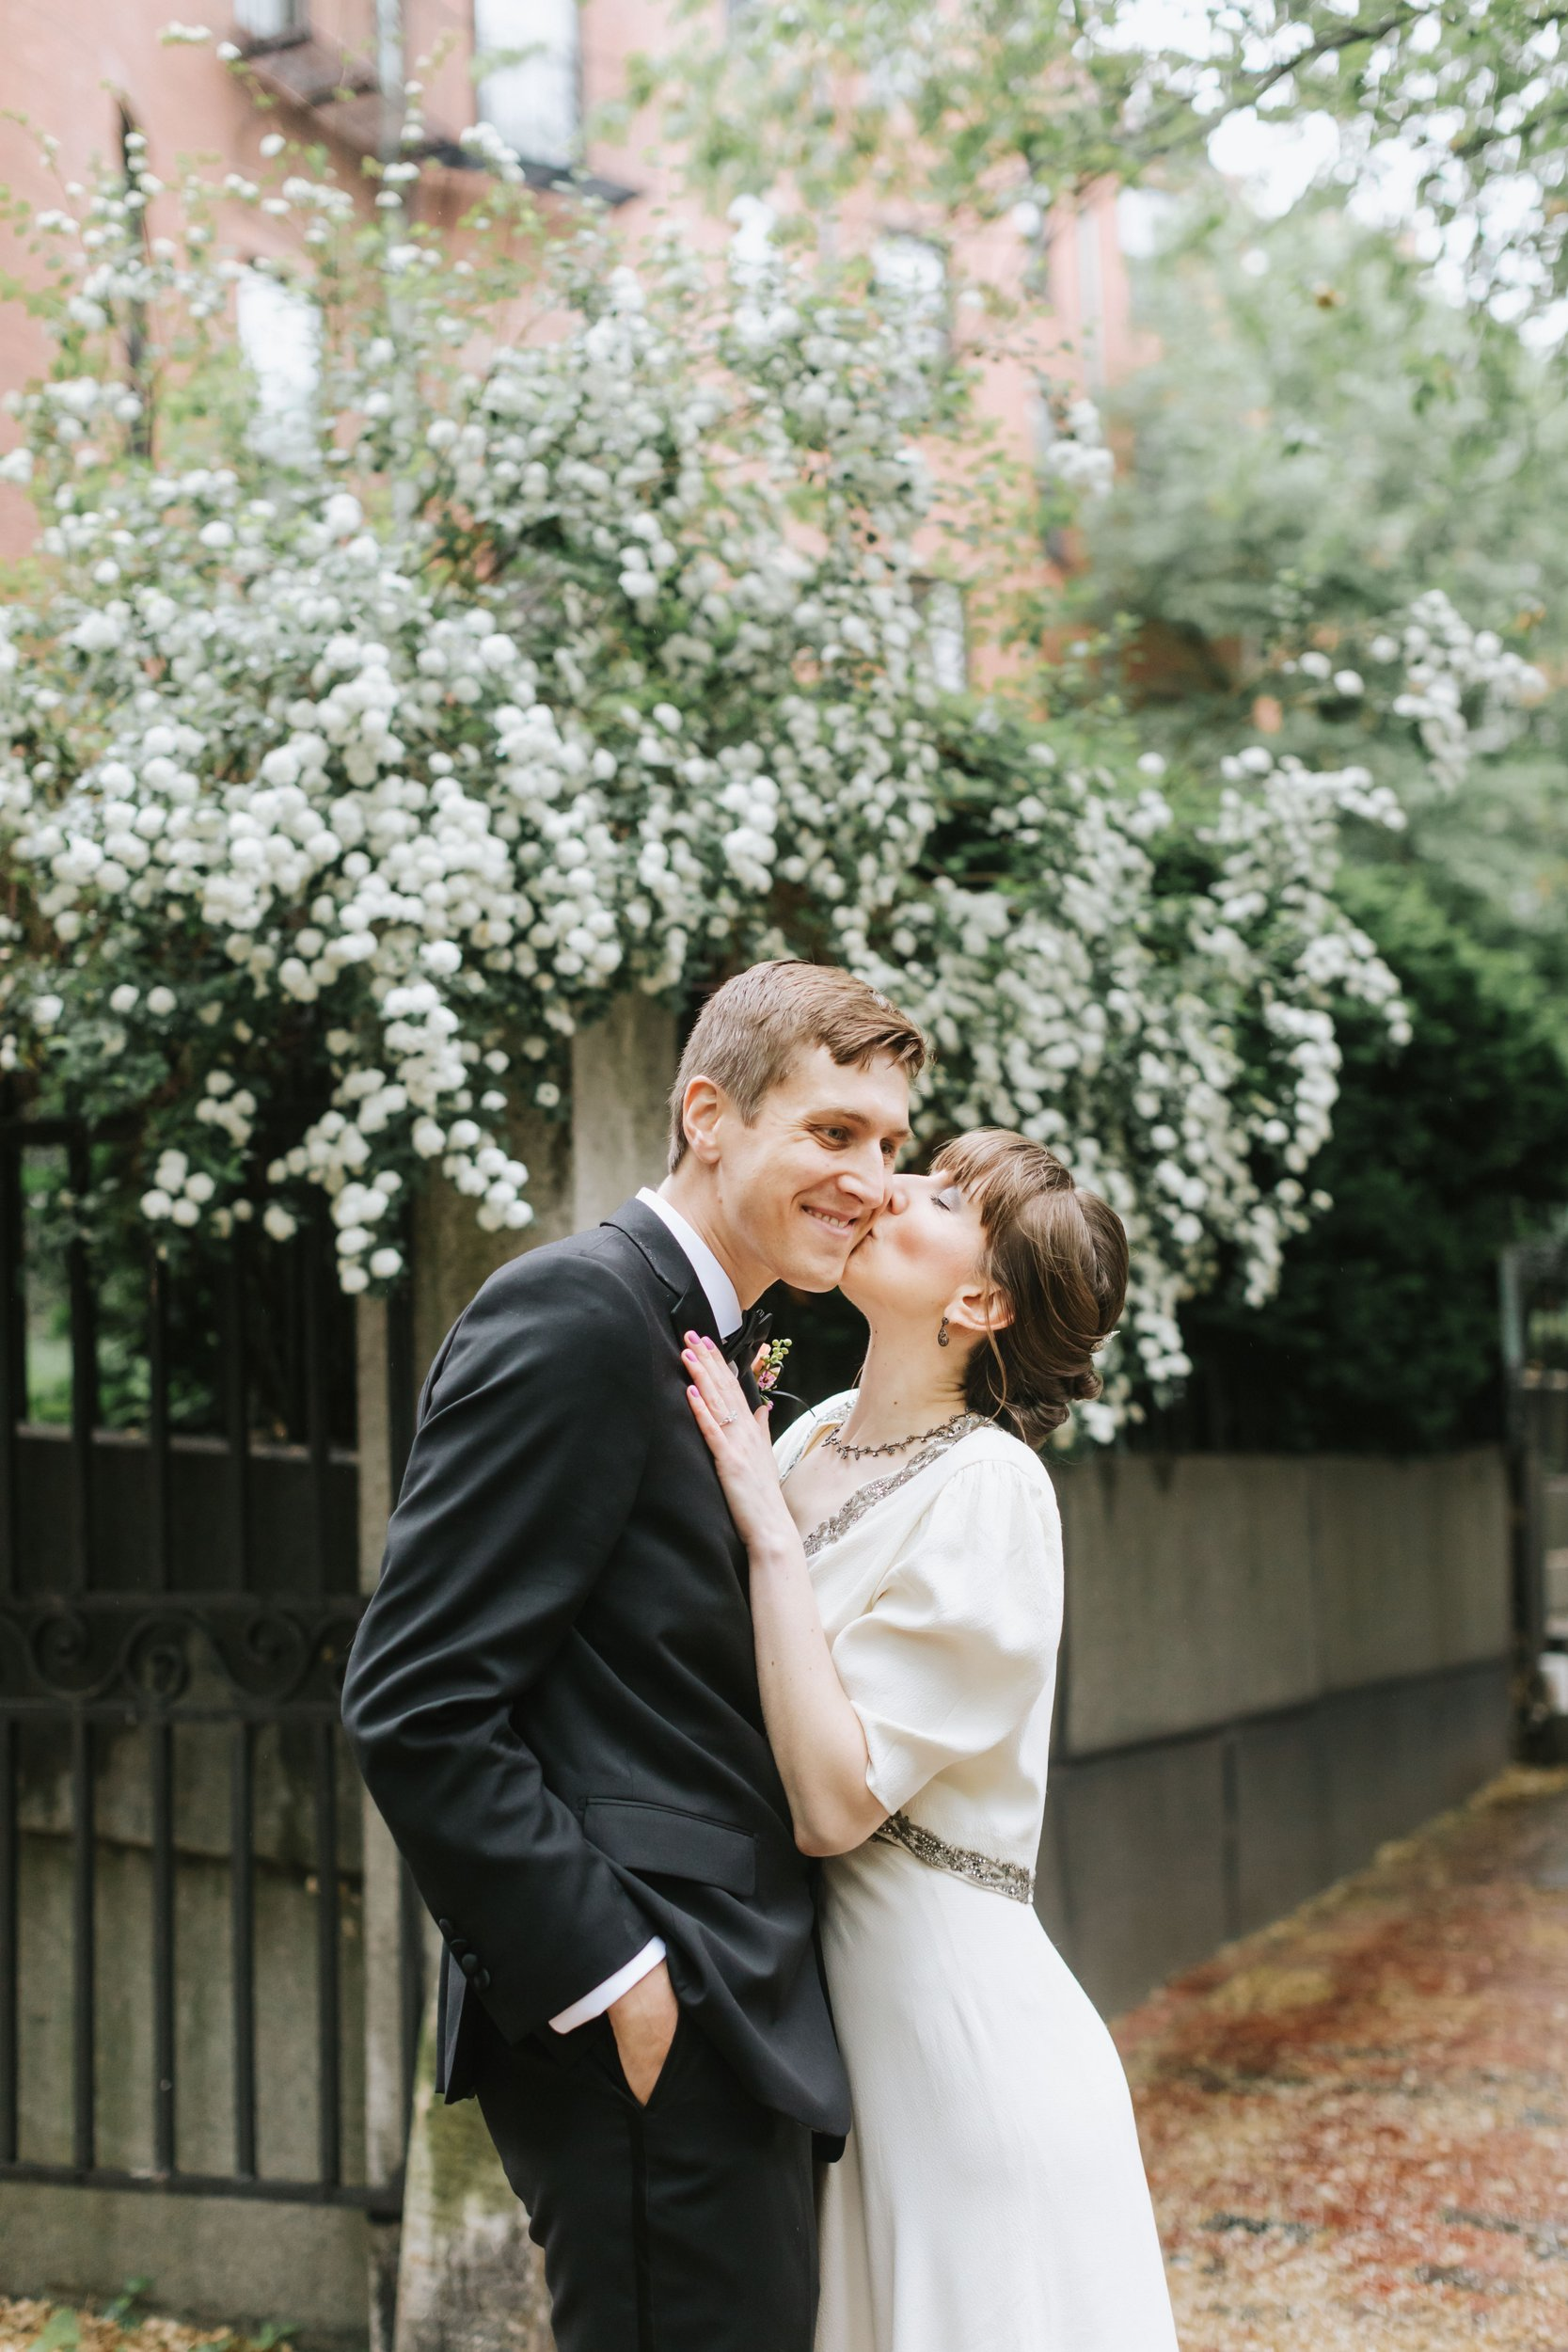 Boston-Public-Garden-Wedding-Vintage-Lena-Mirisola-14.JPG